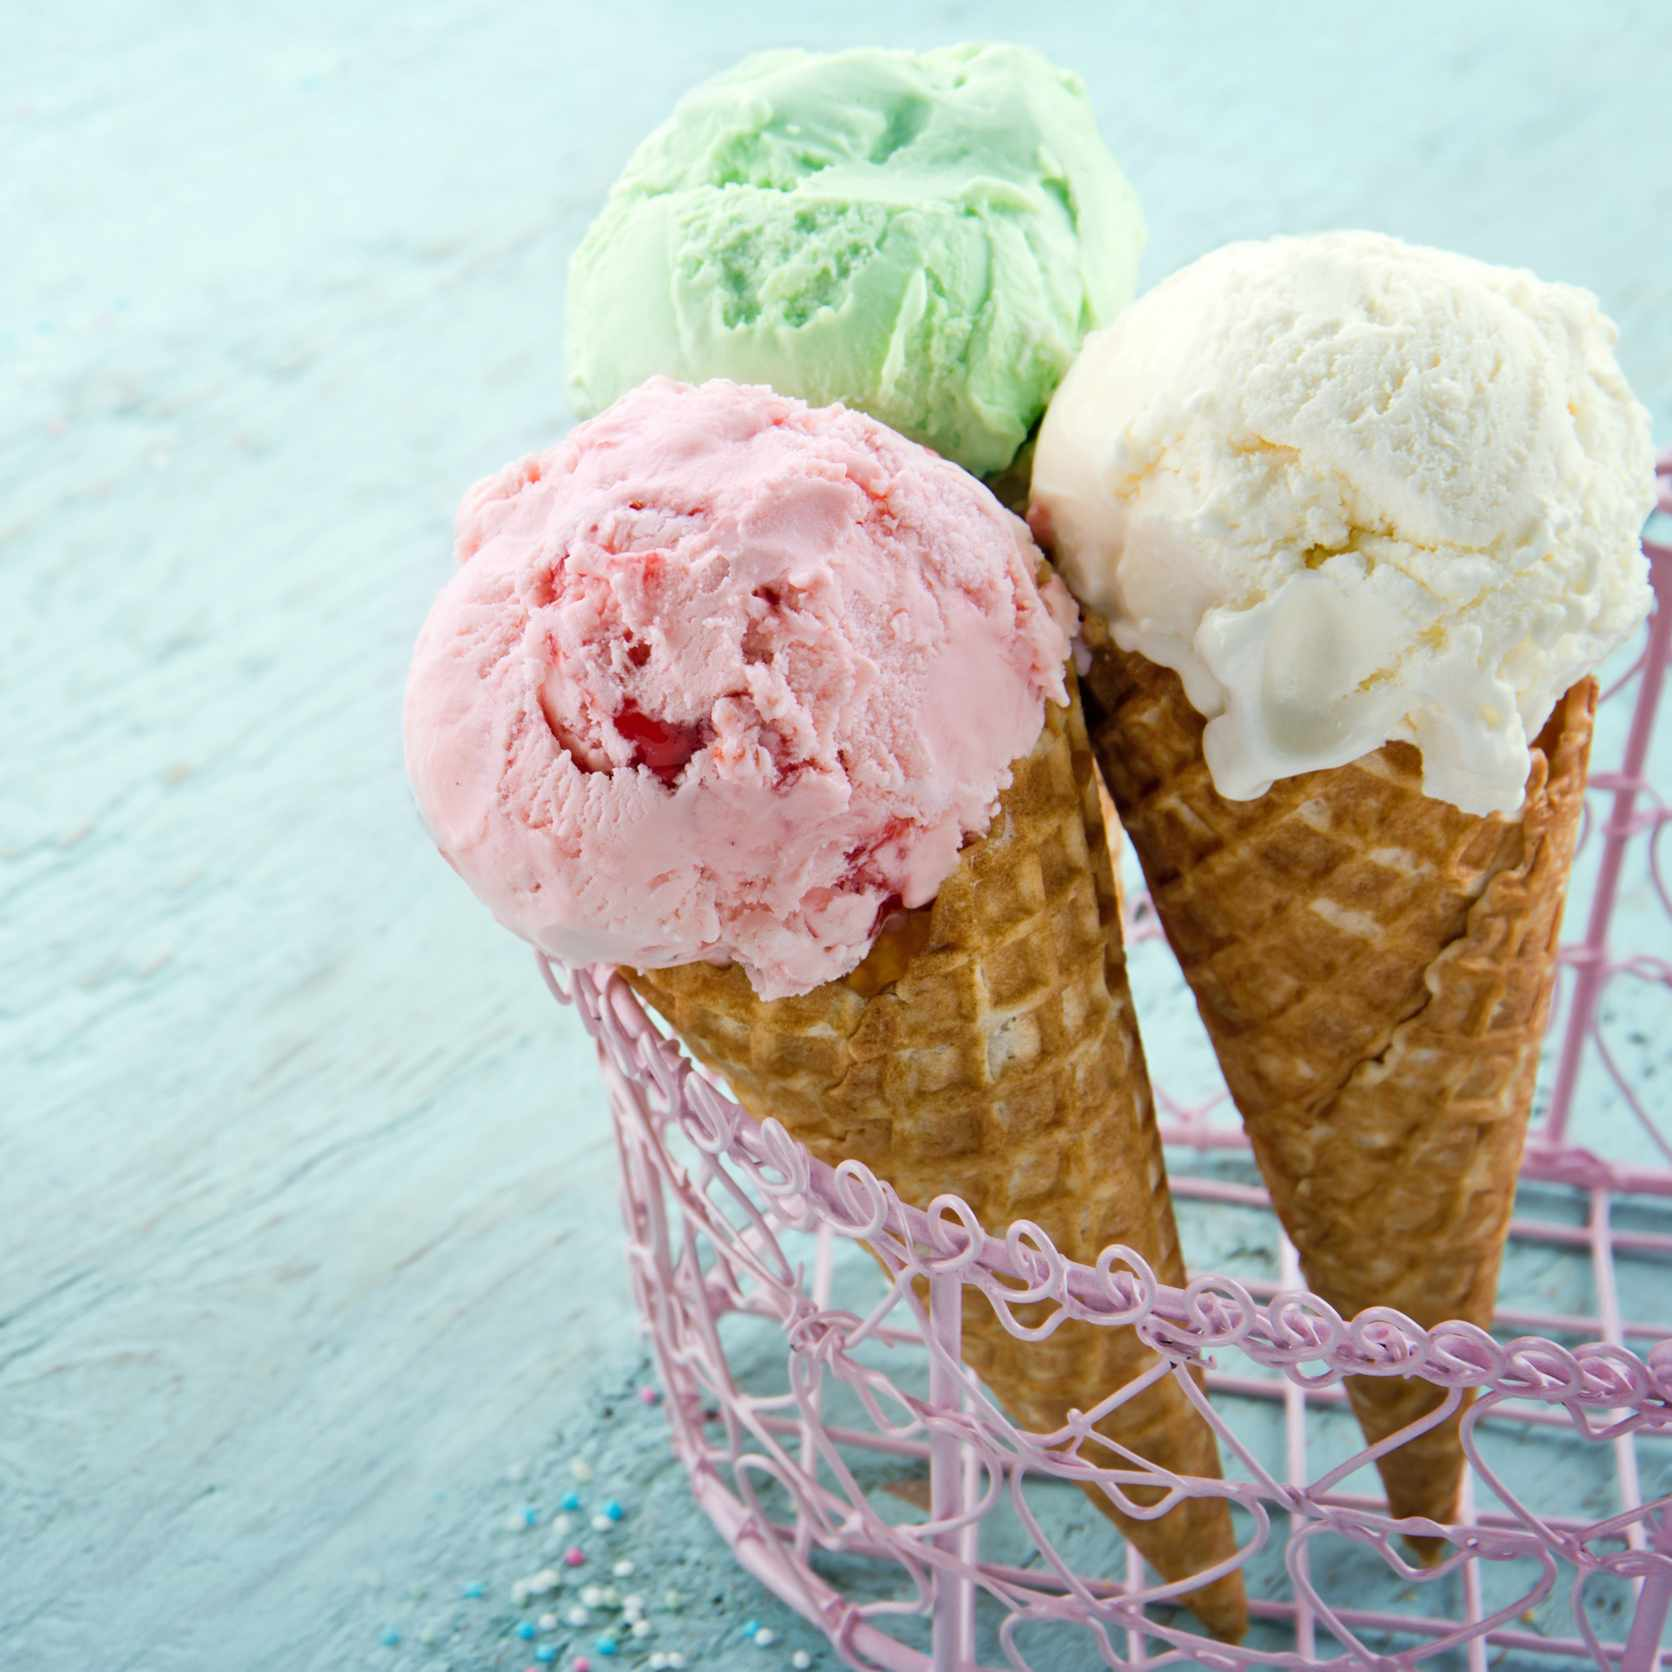 three ice cream cones in a wire basket rack